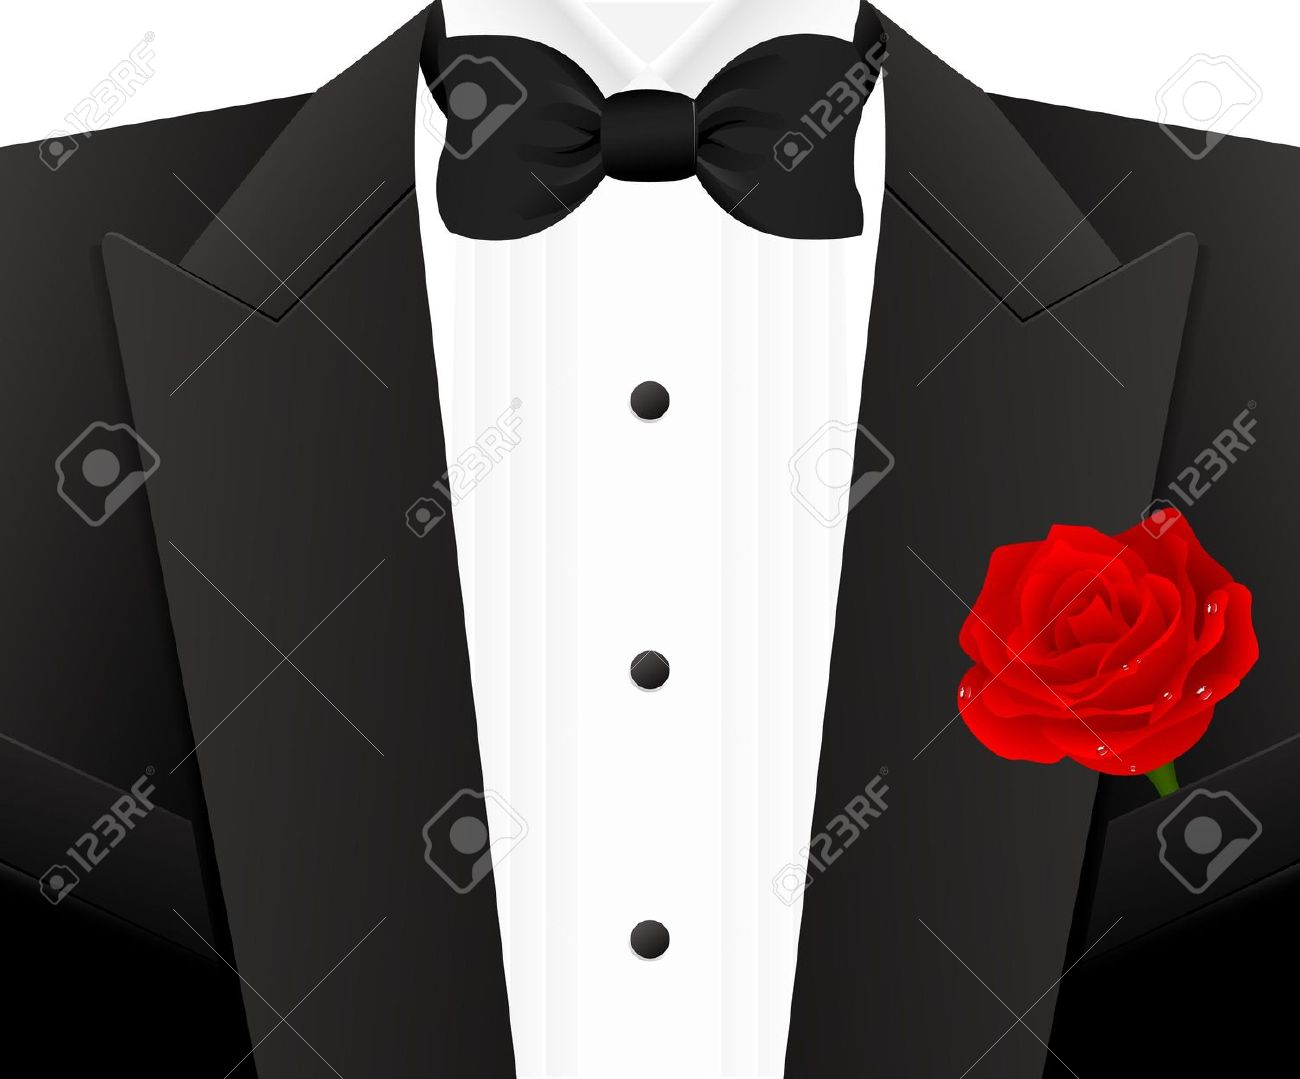 Tie clipart formal Clip art Clipartwork #5292 And